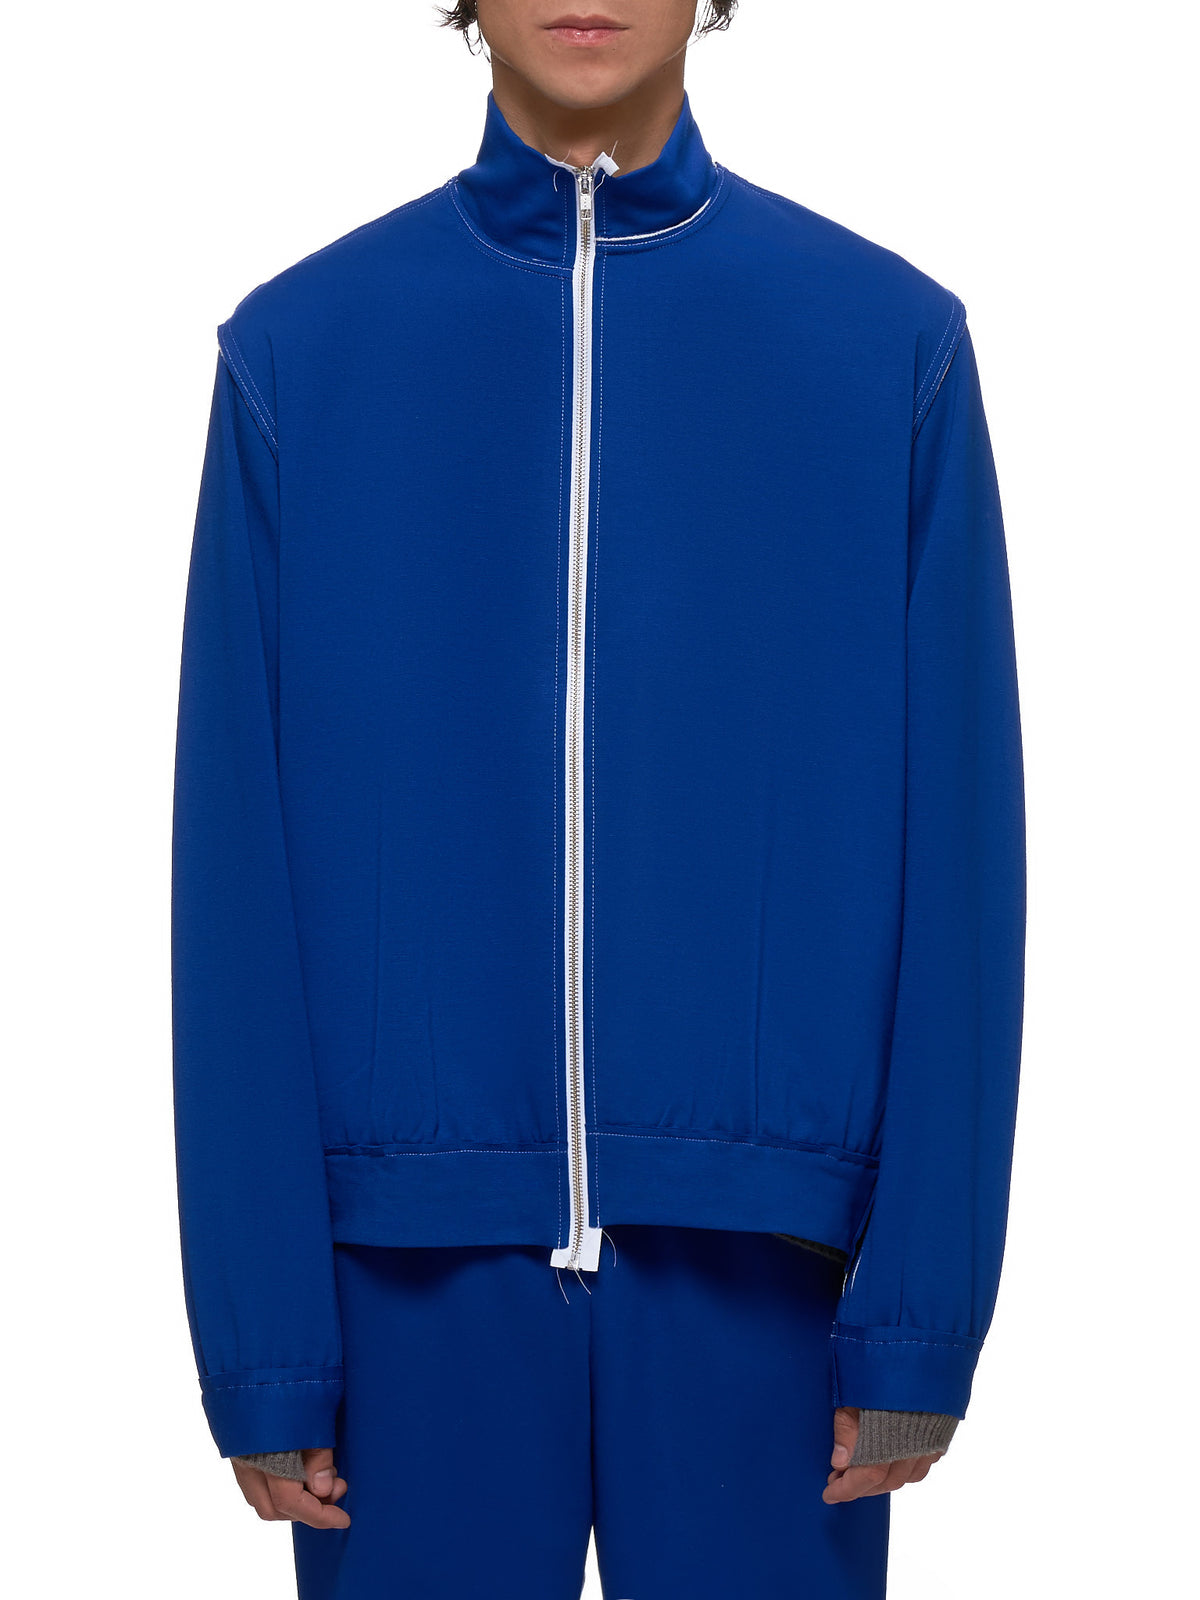 Track Jacket (08.08.03-TRACK-SWEAT-BLUE)